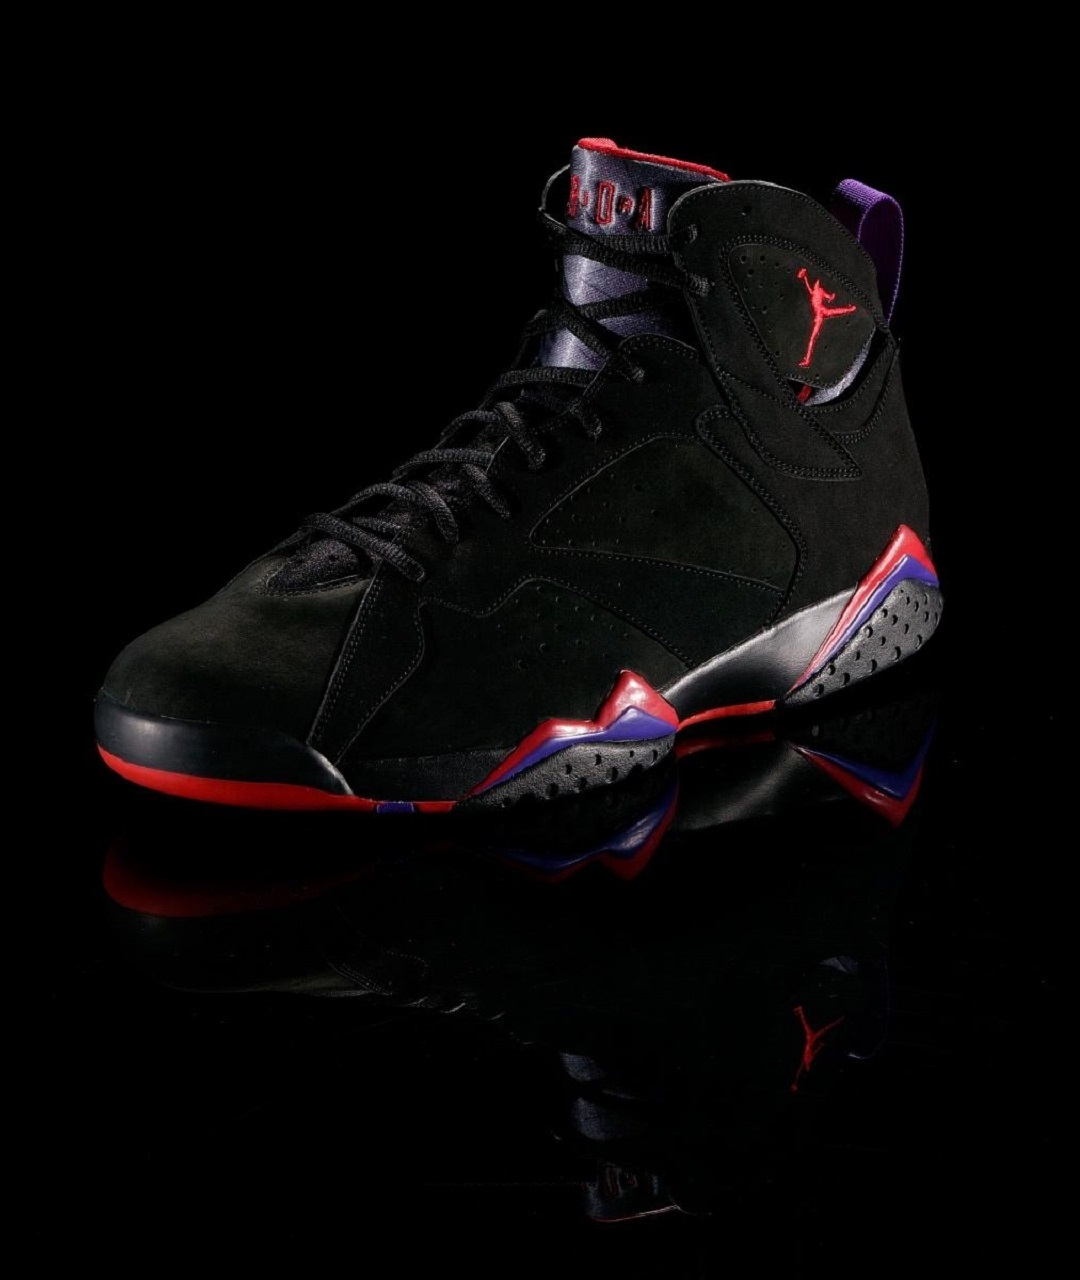 f48b8f60d57 Among other changes in the Air Jordan series, ads shifted from MJ's  collaboration with Mars Blackmon to Michael and Bugs Bunny. One commercial  featured the ...